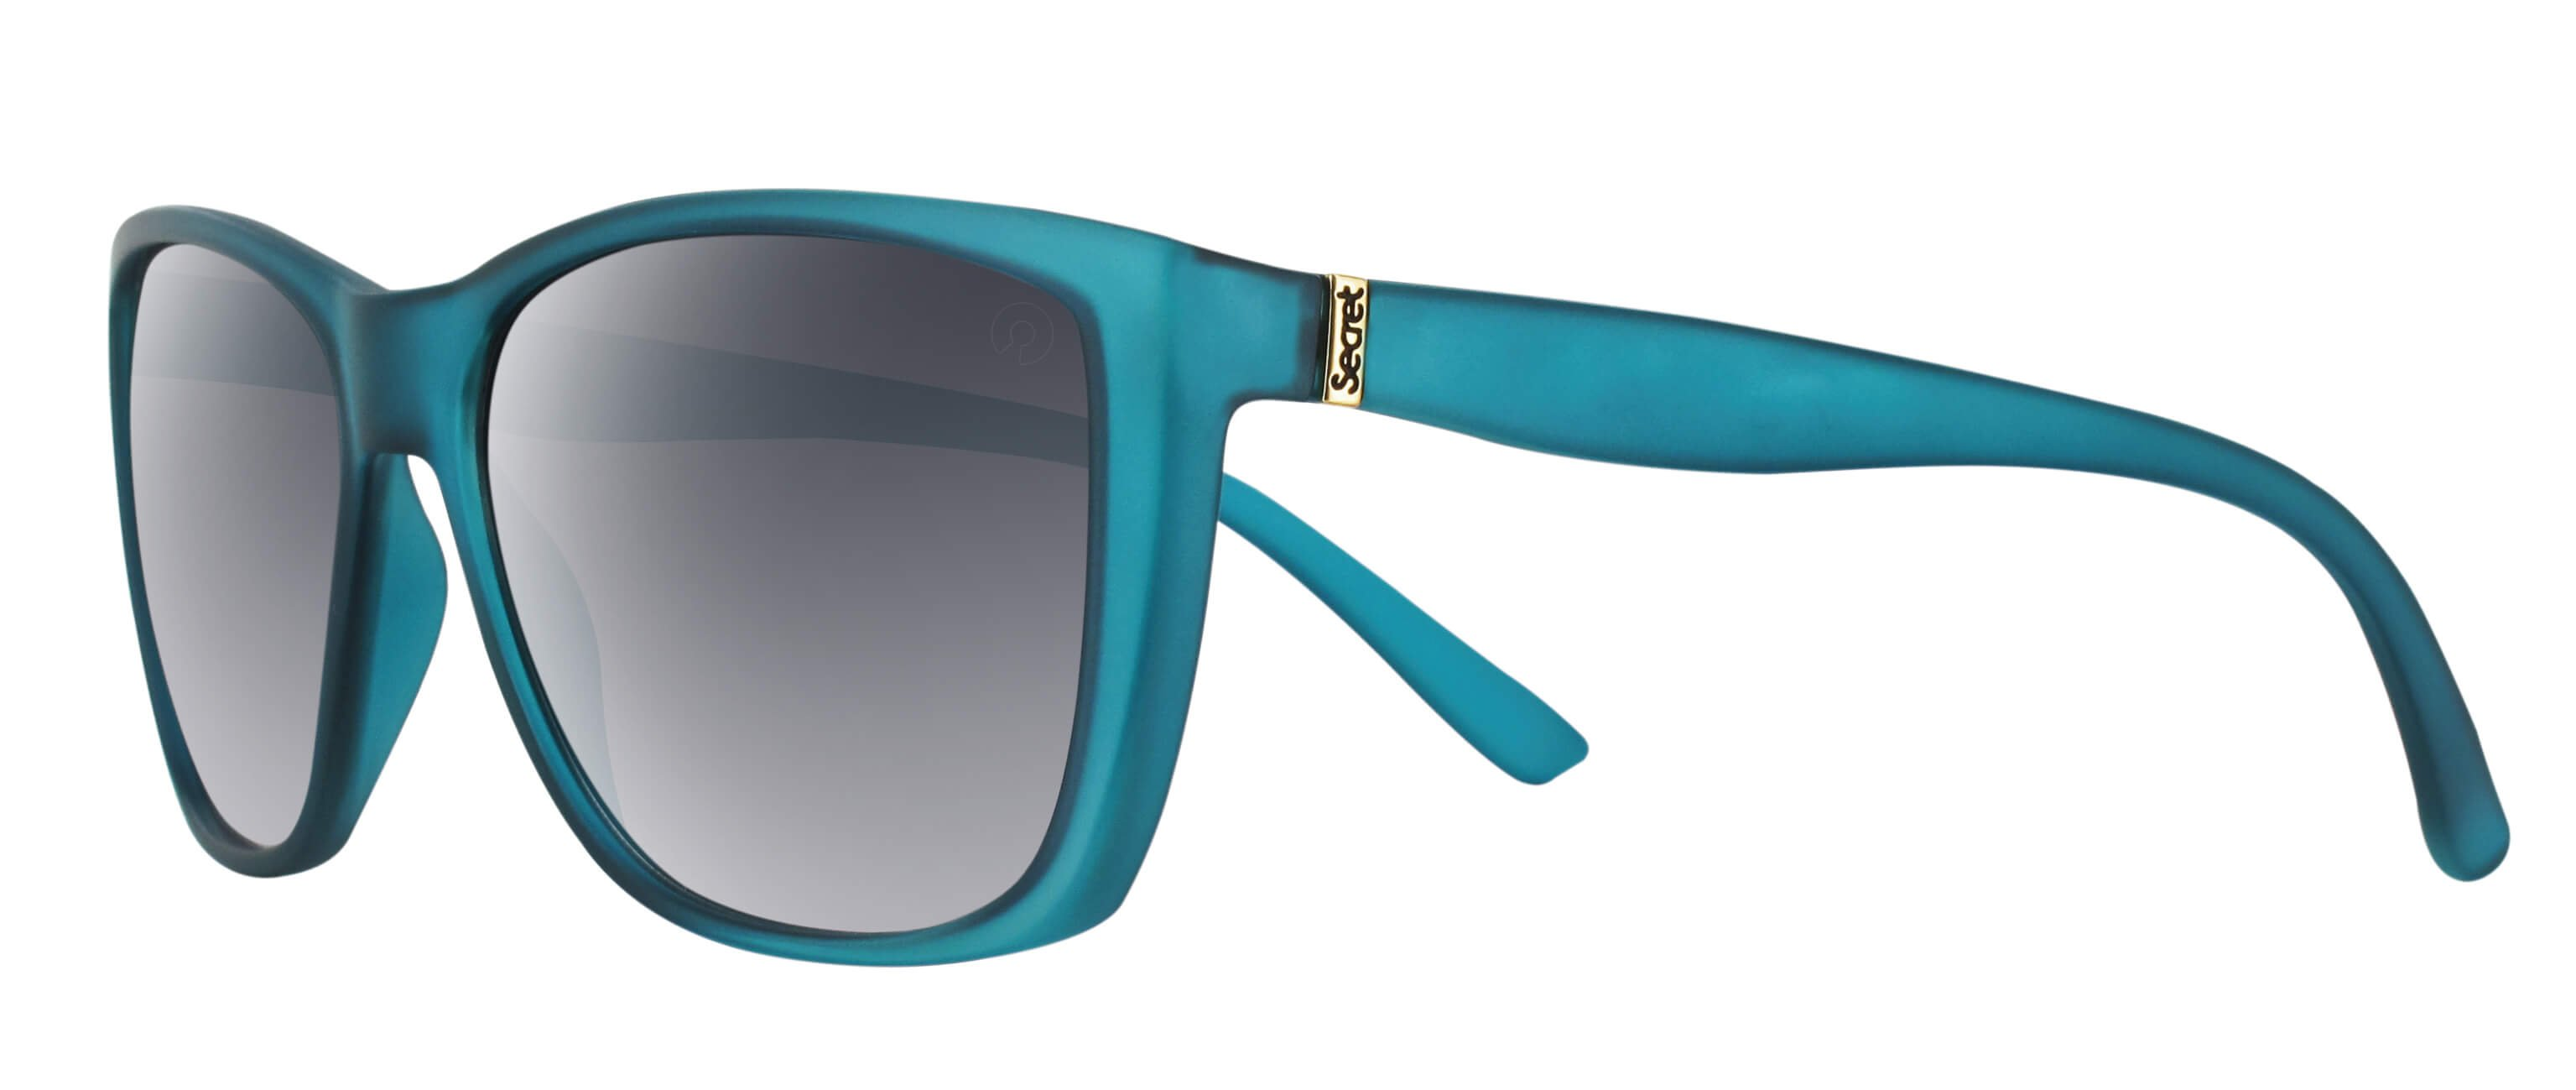 ÓC SECRET IRIS GLASSY MARINE GREEN / POLARIZED GRADIENT GRAY